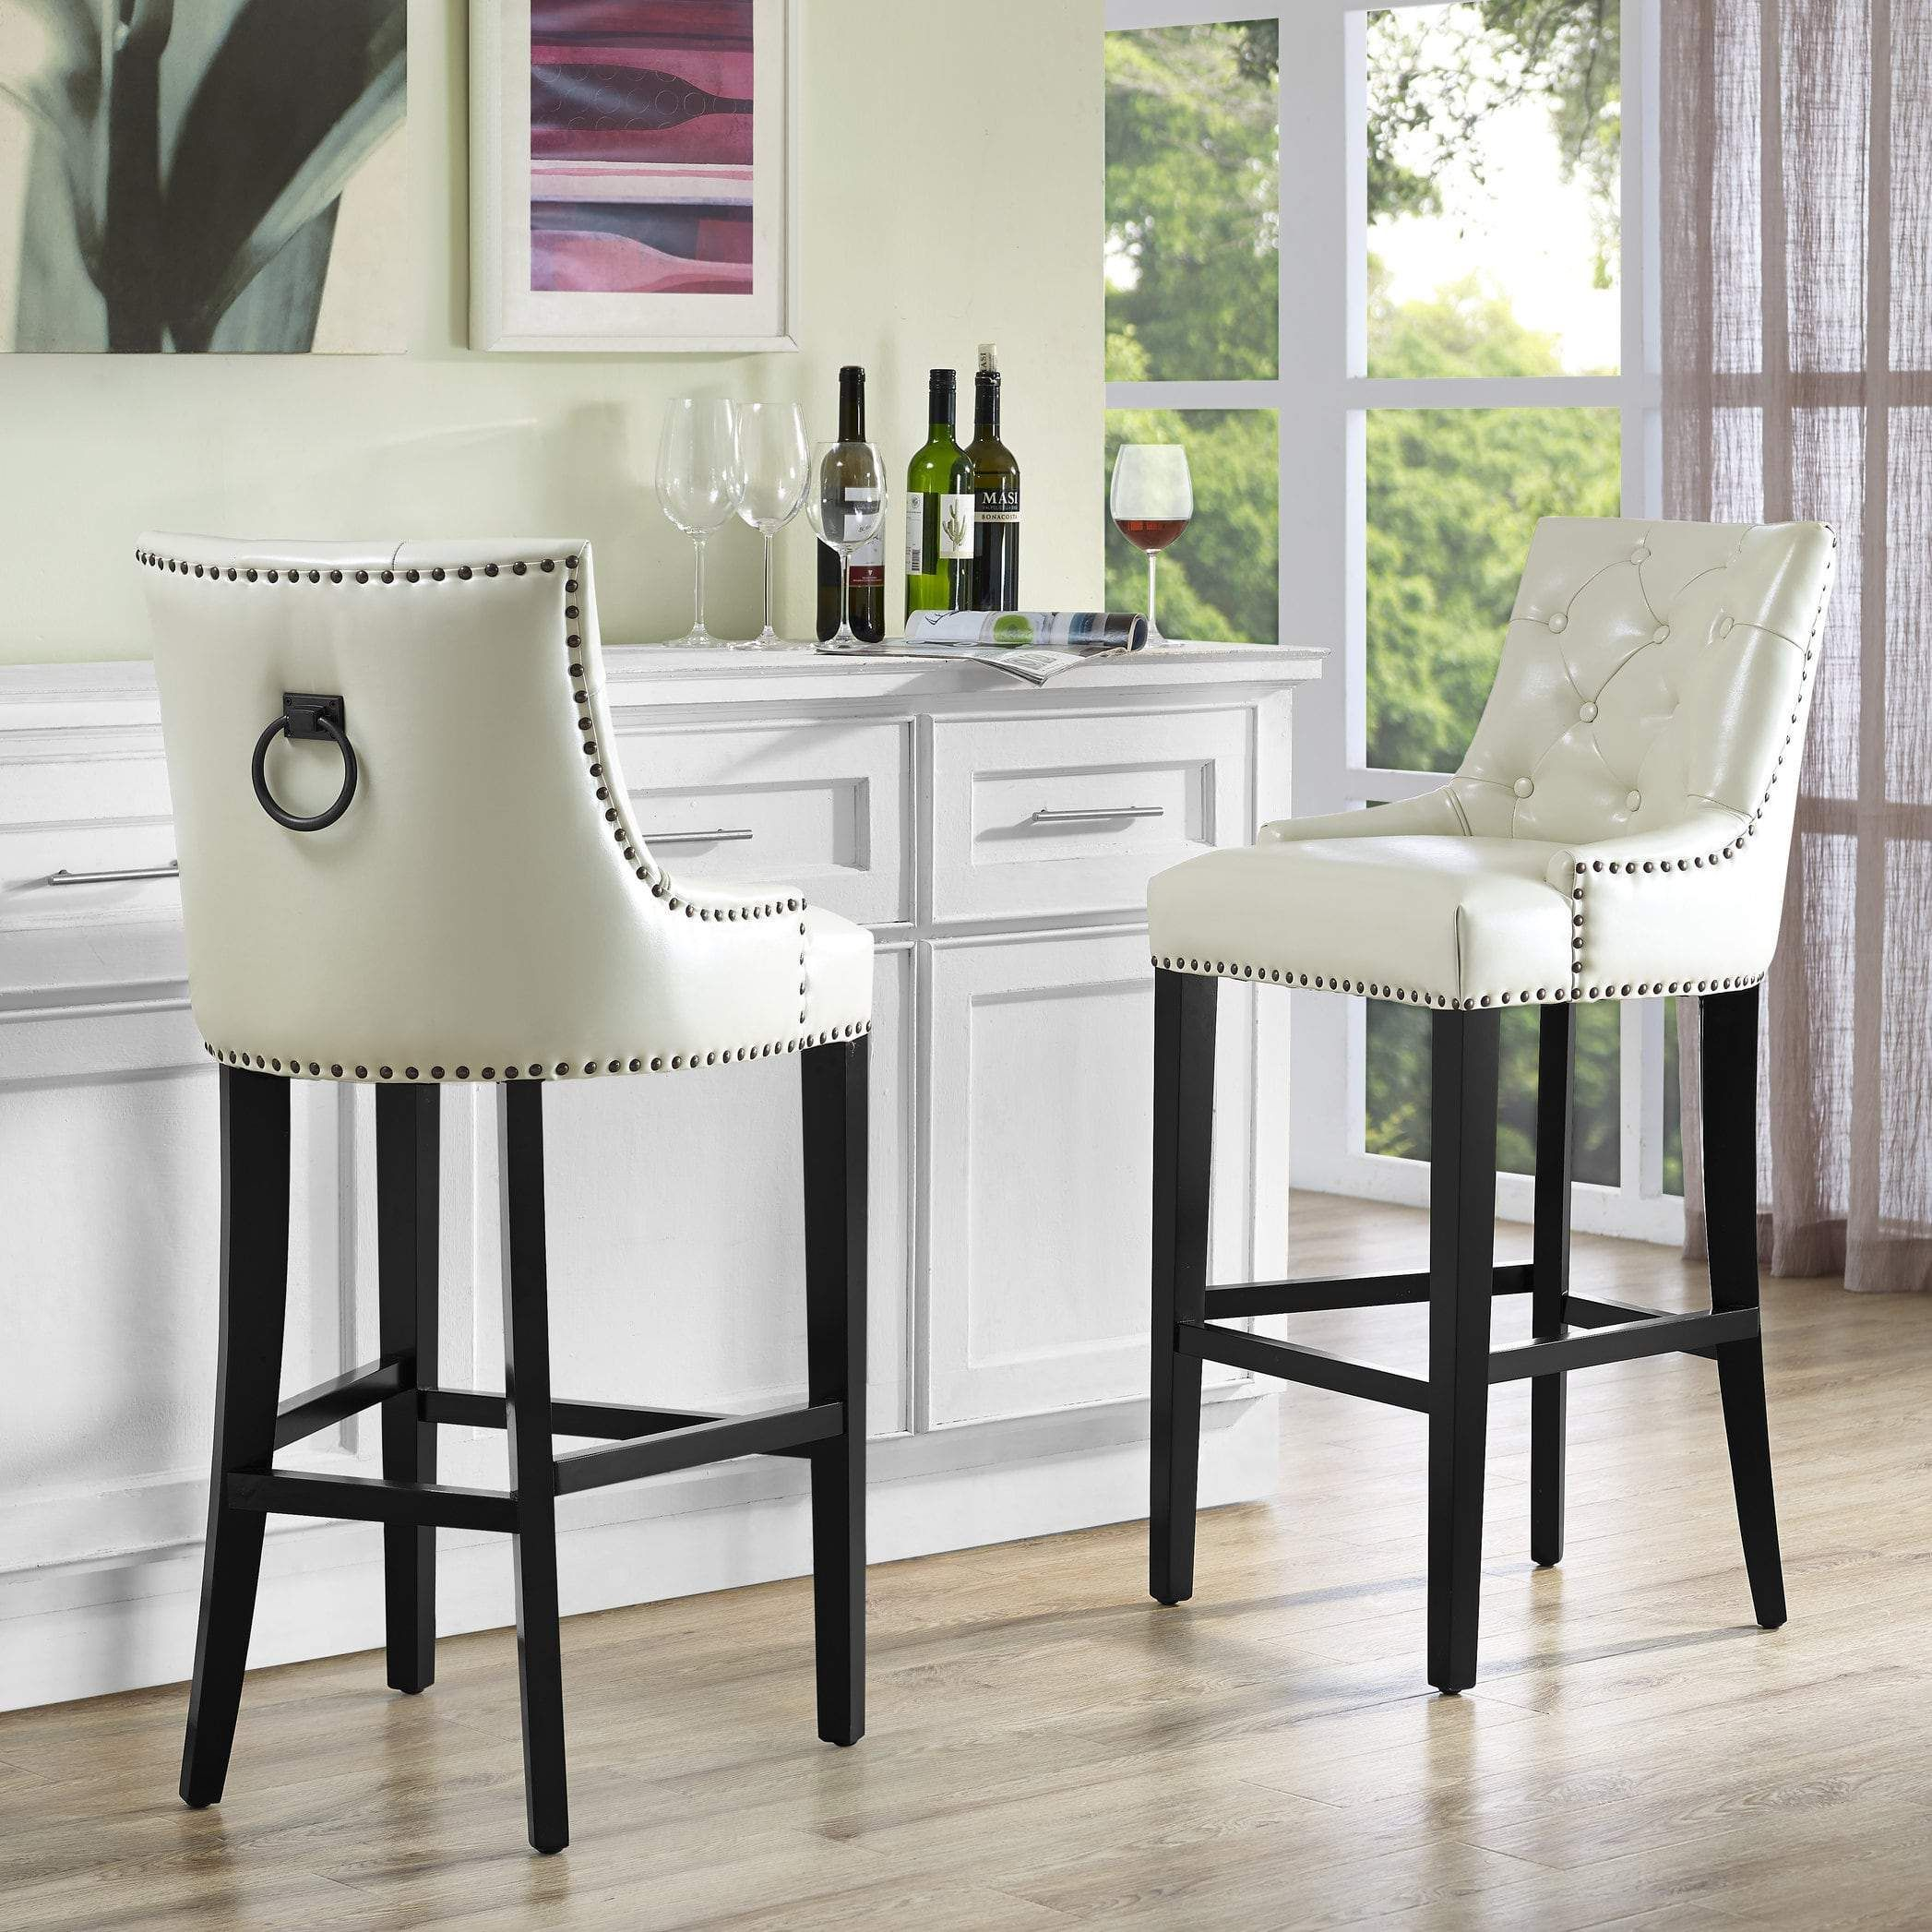 Cream Leather Counter Stool   Leather counter stools, Bar stools ...